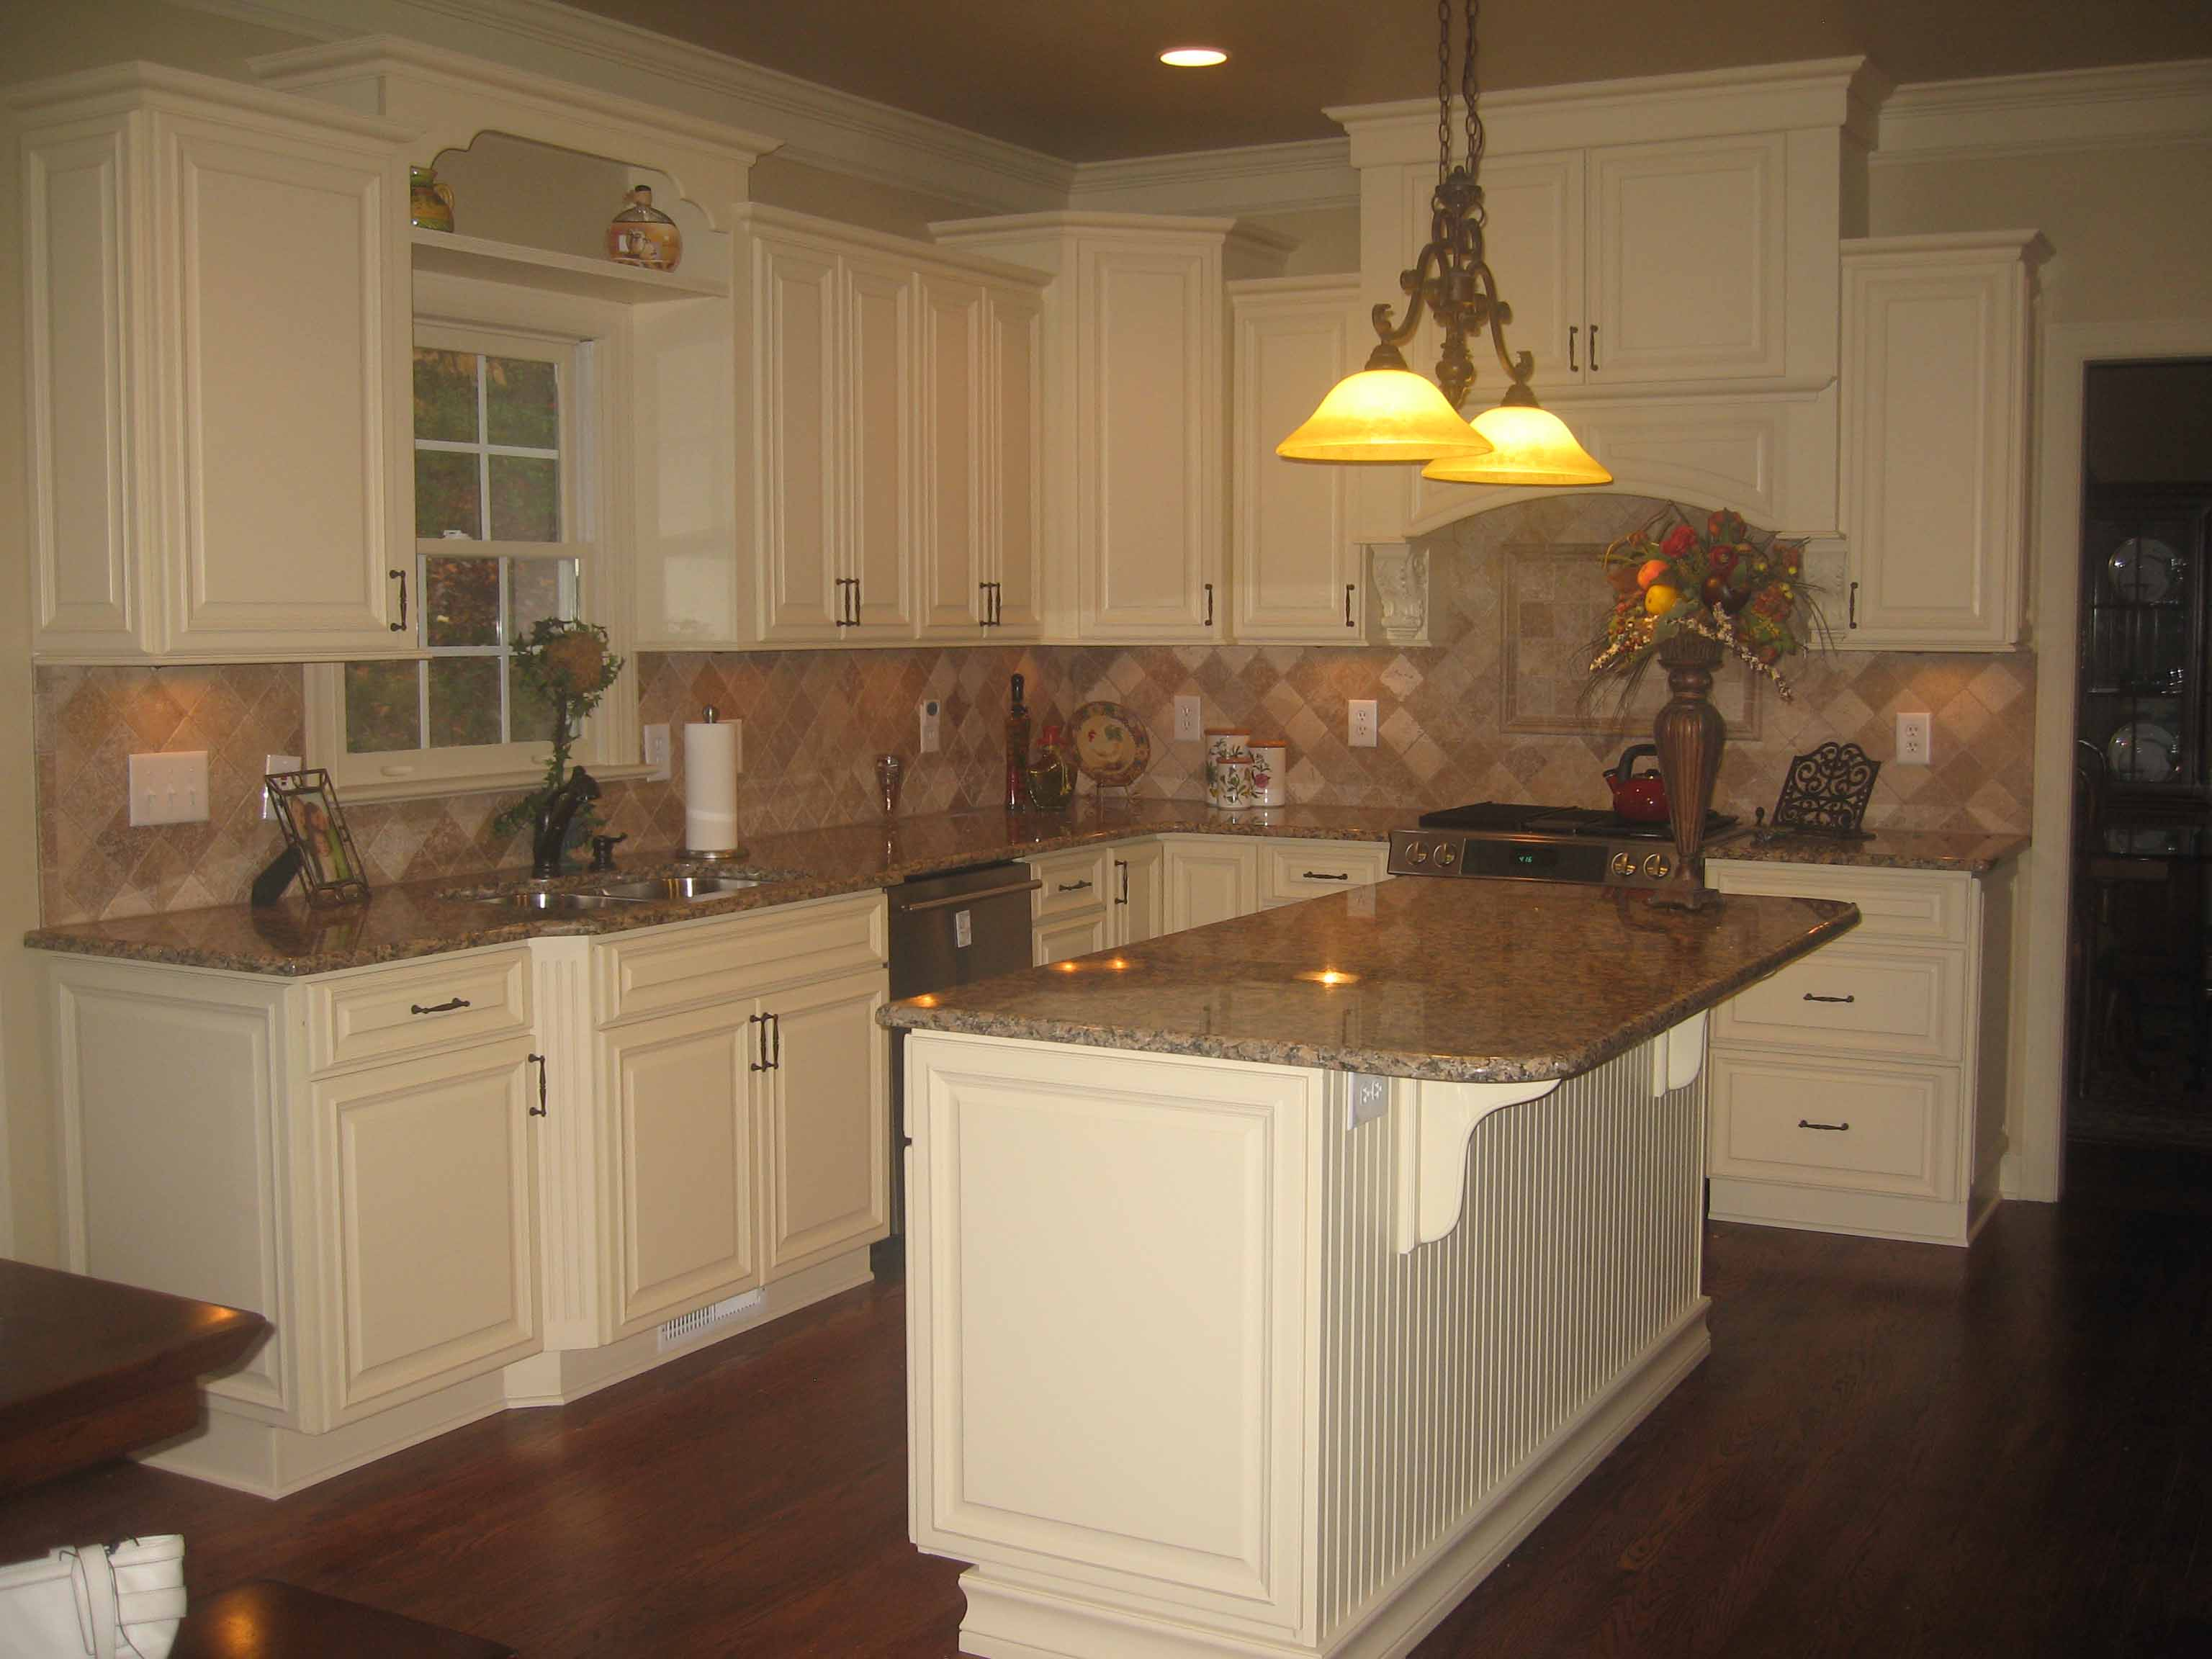 Rta White Kitchen Cabinets Buy Cabinets Online Rta Kitchen Cabinets Kitchen Cabinets